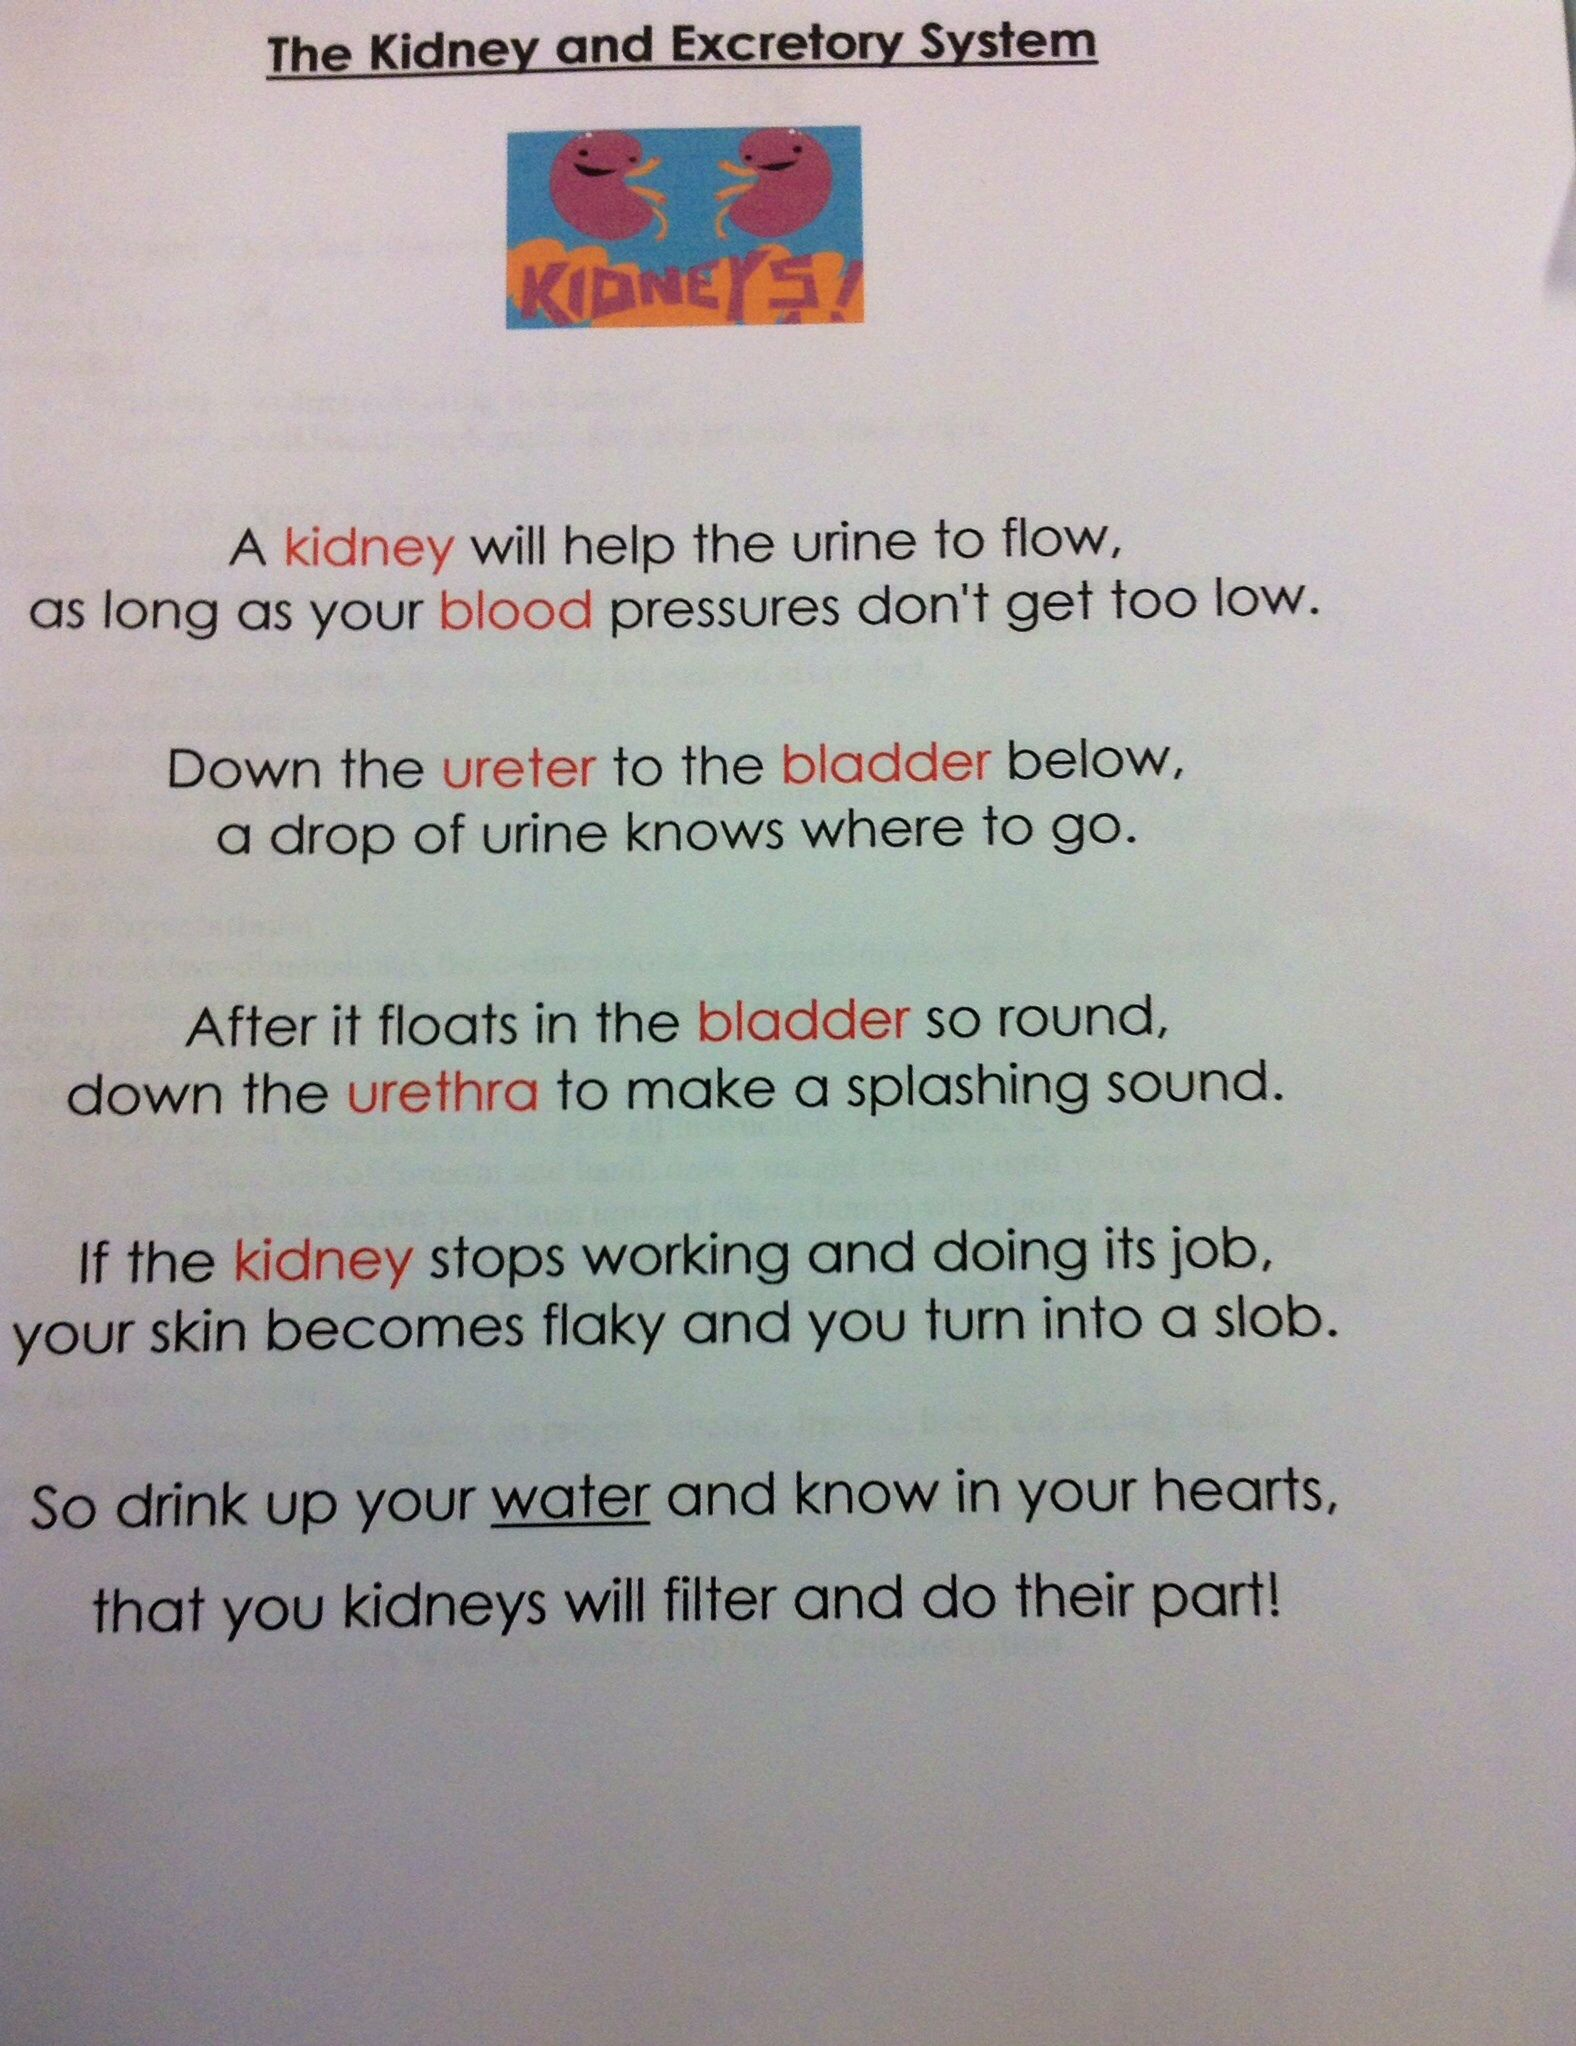 The Kidney & Excretory System: Poem Handout | 5th grade activities ...